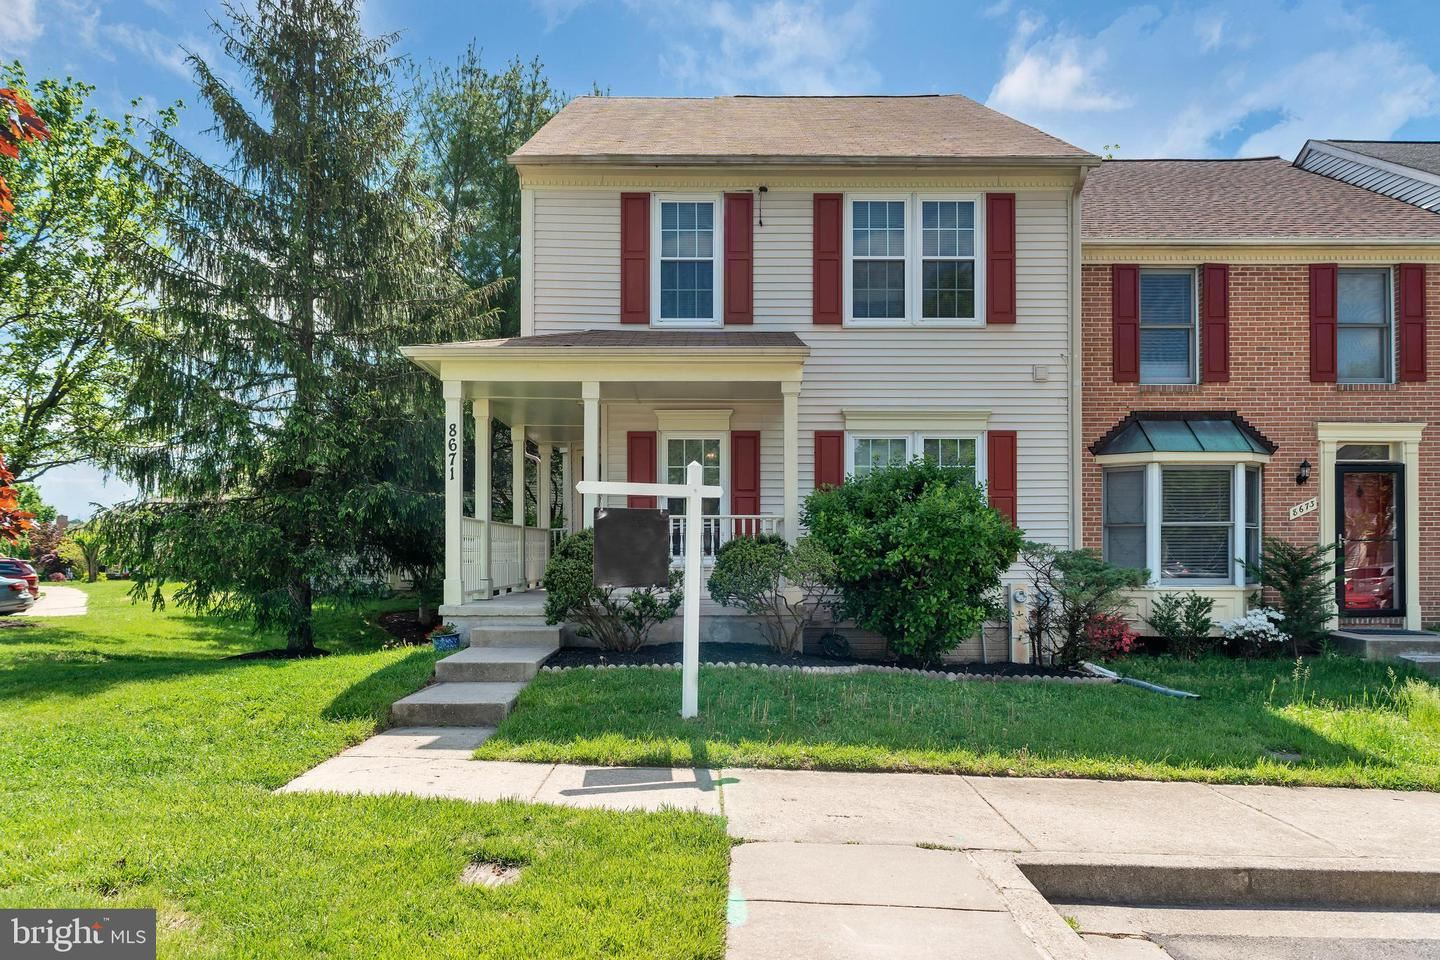 8671 MANAHAN DR, Ellicott City, MD 21043 - MLS#: MDHW294190